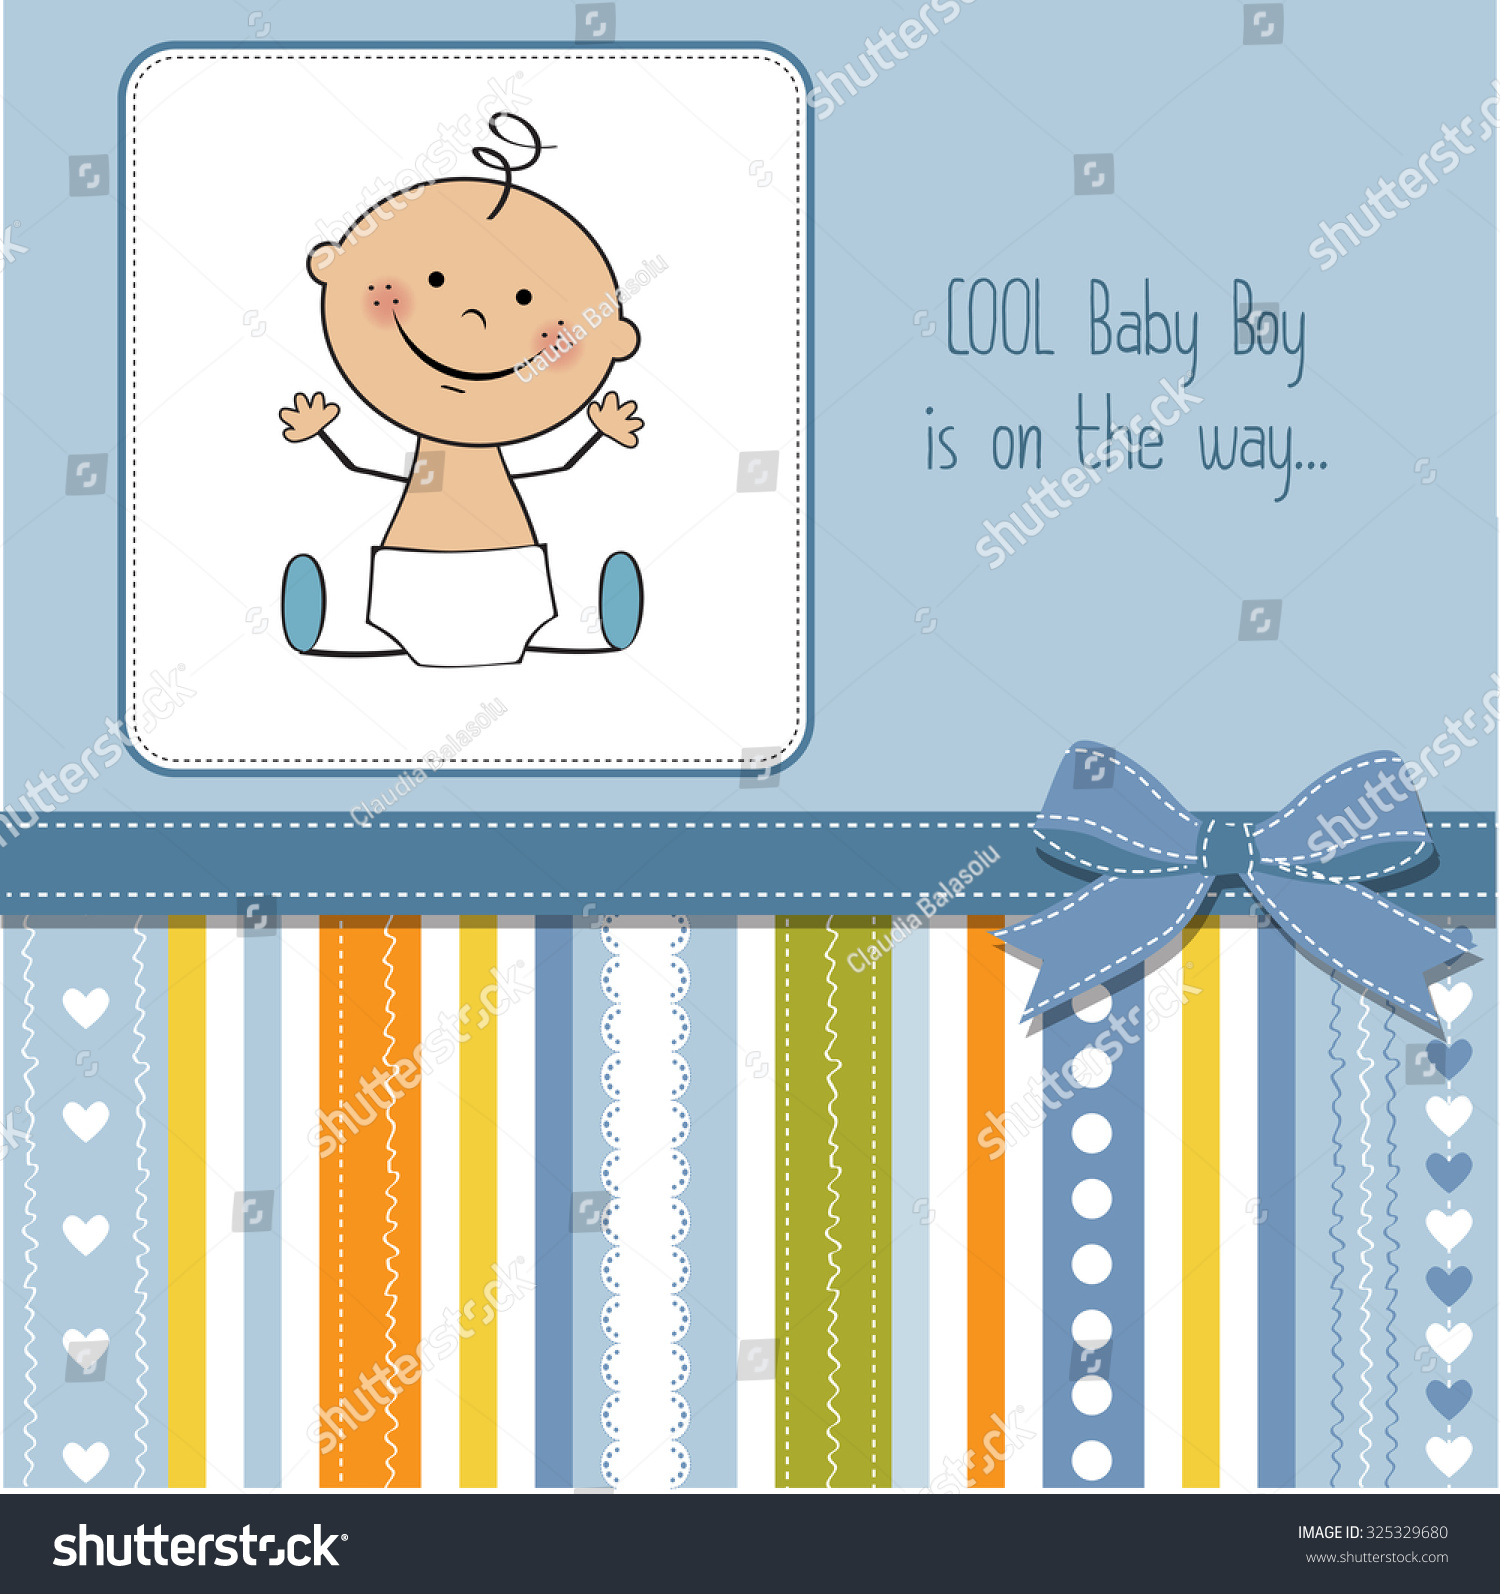 Baby boy arrival card vector by leonart image 600444 vectorstock - Baby Boy Shower Card Vector Eps10 325329680 Shutterstock Wallpaper Gallery Baby Shower Card Vector